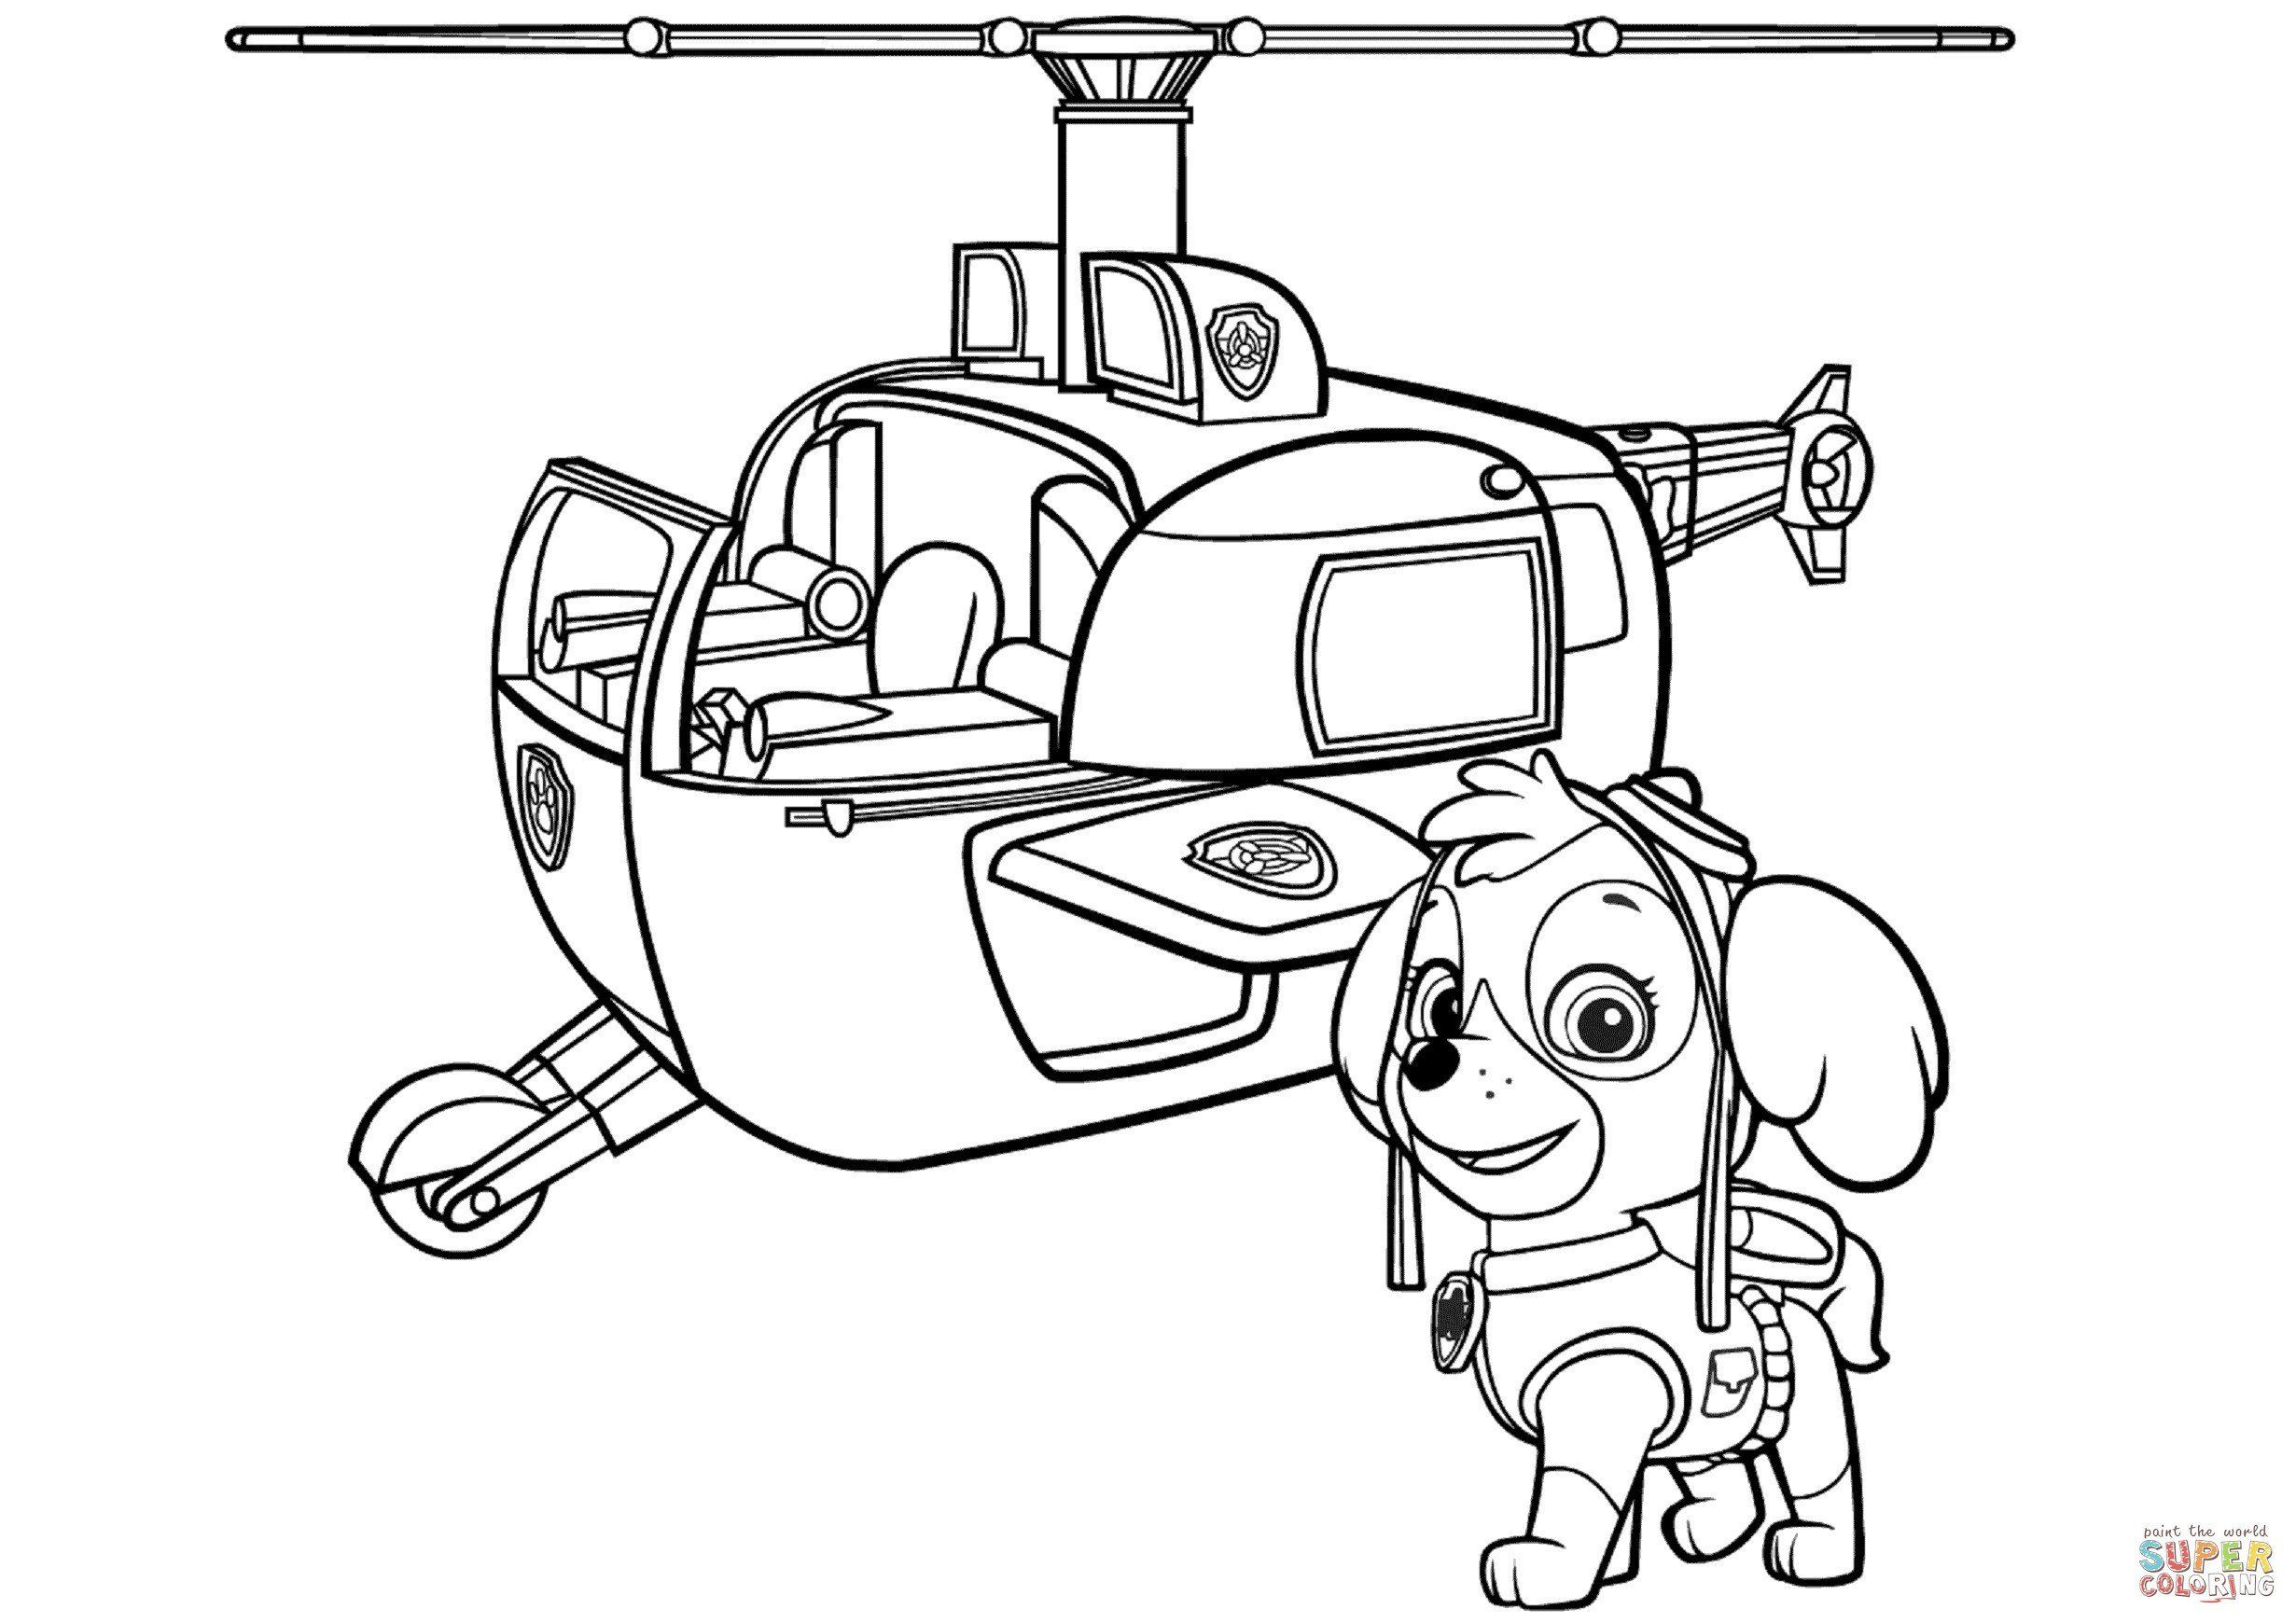 Joseph And The Coat Of Many Colors Coloring Page Inspirational Helicopter Coloring Pages Paw Patrol Coloring Paw Patrol Coloring Pages Paw Patrol Printables